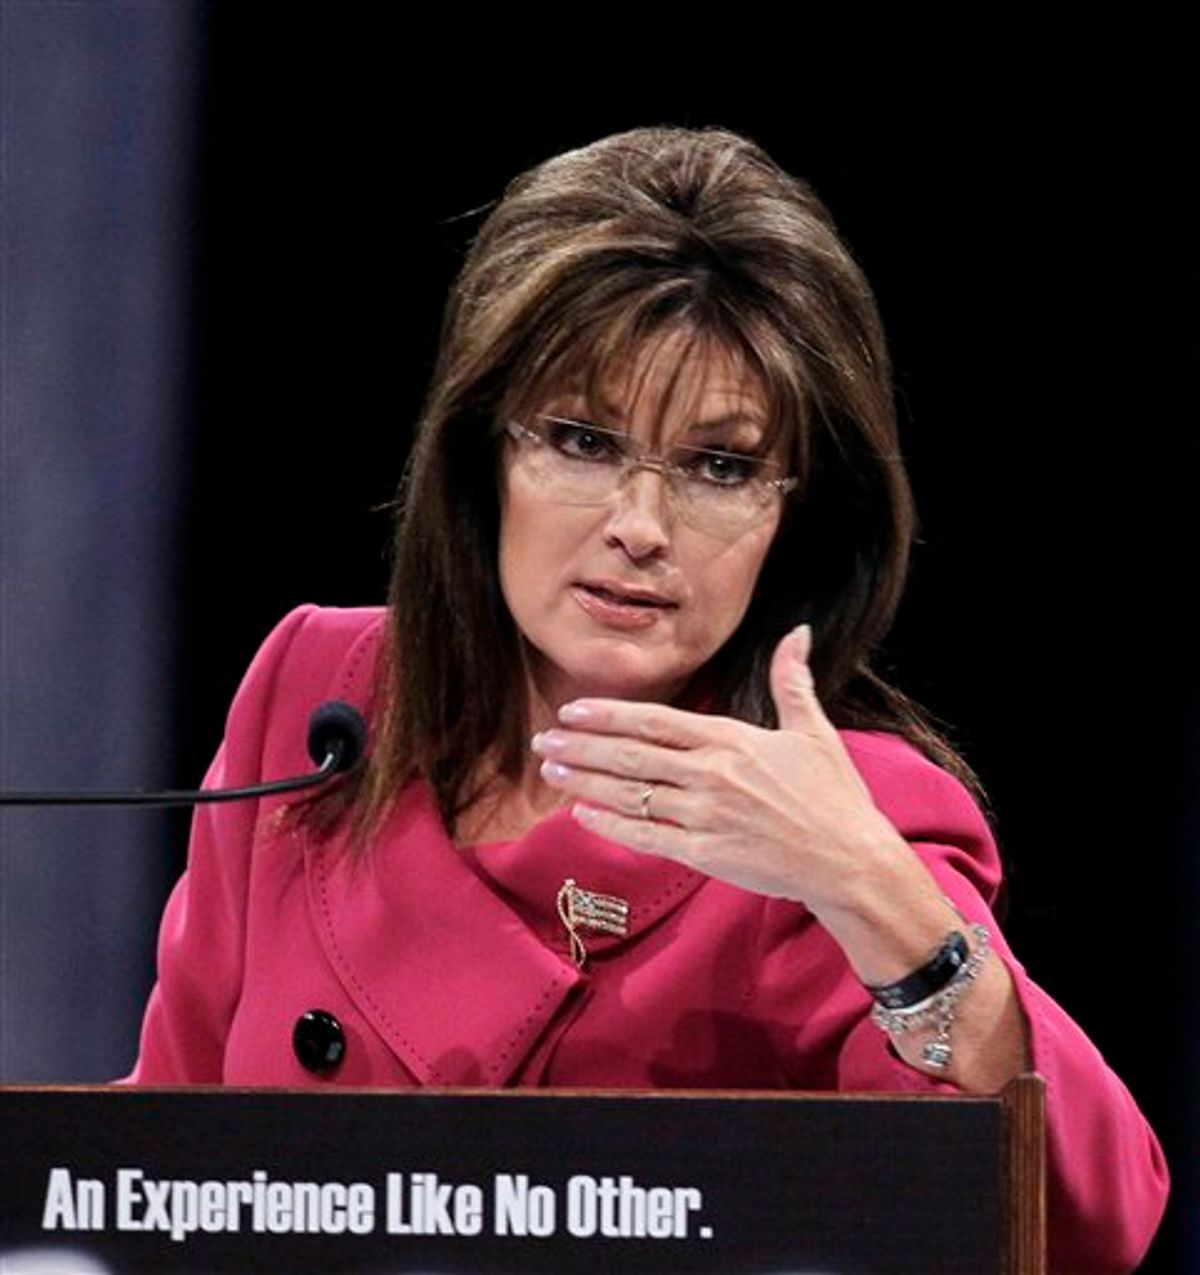 Former Republican vice presidential candidate Sarah Palin gestures while addressing the National Quartet Convention in Louisville, Ky., Thursday, Sept. 16, 2010.  (AP Photo/Ed Reinke) (AP)